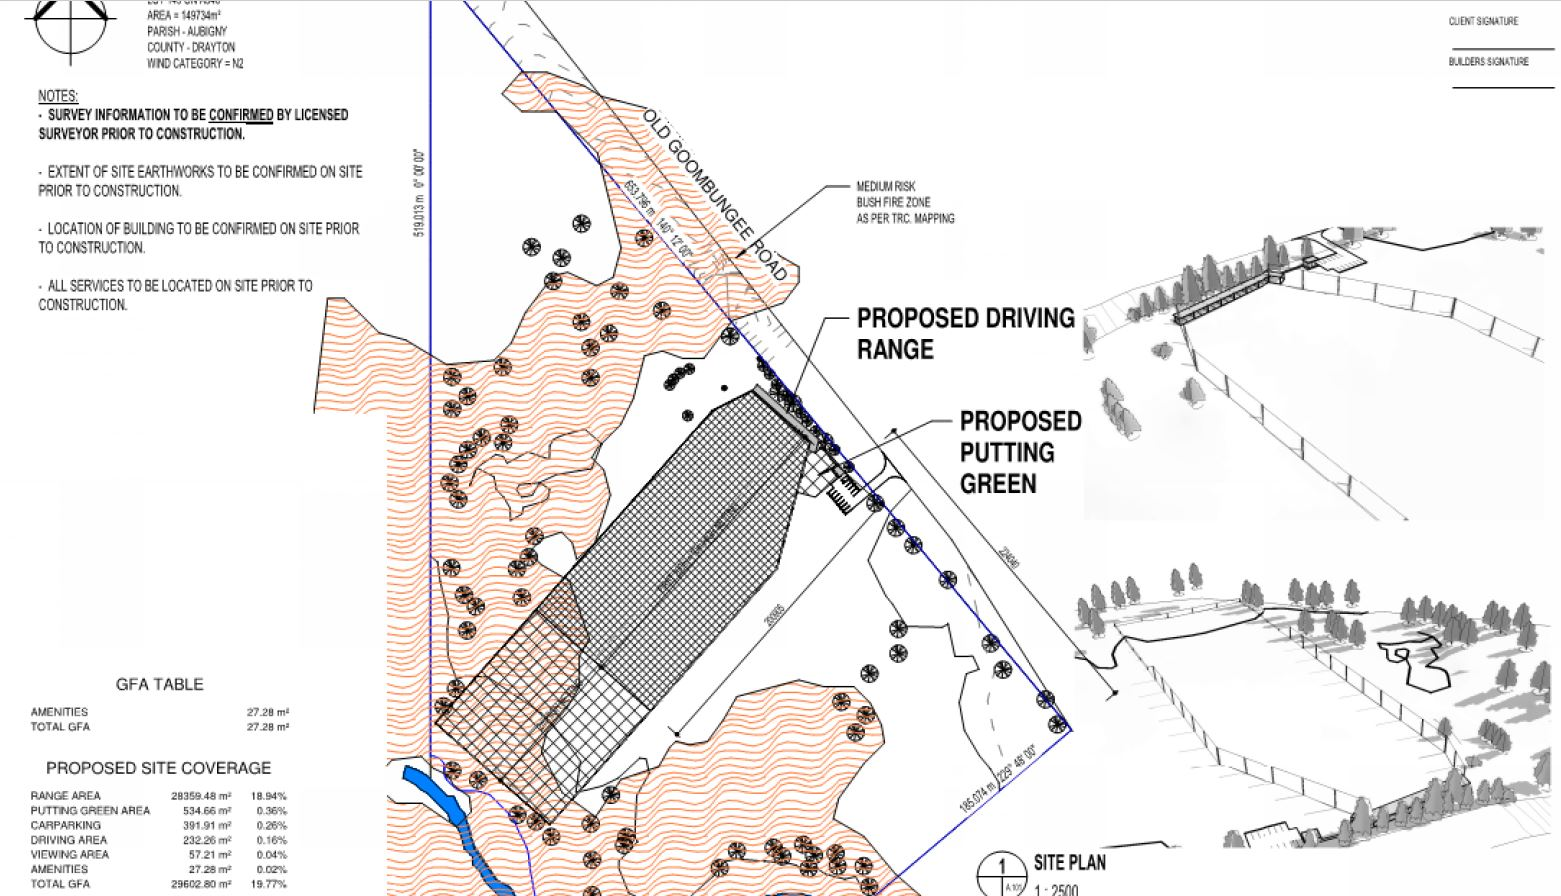 Driving range proposed north of Toowoomba.